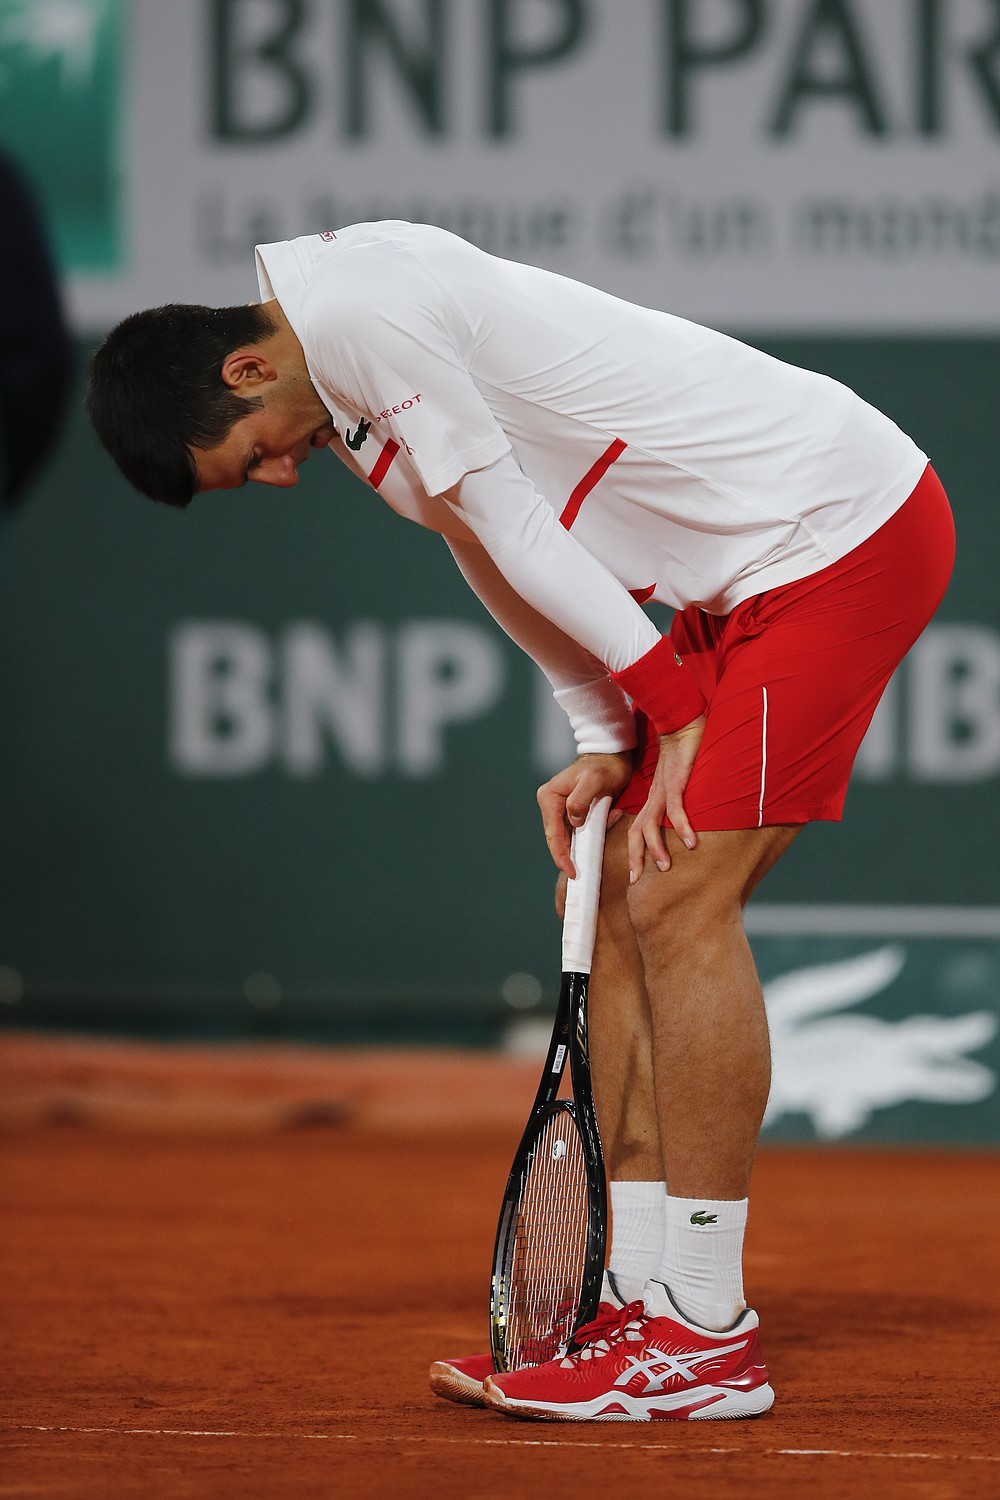 Serbia's Novak Djokovic leans on his racket in the quarterfinal match of the French Open tennis tournament against Spain's Pablo Carreno Busta at the Roland Garros stadium in Paris, France, Wednesday, Oct. 7, 2020. (AP Photo/Christophe Ena)